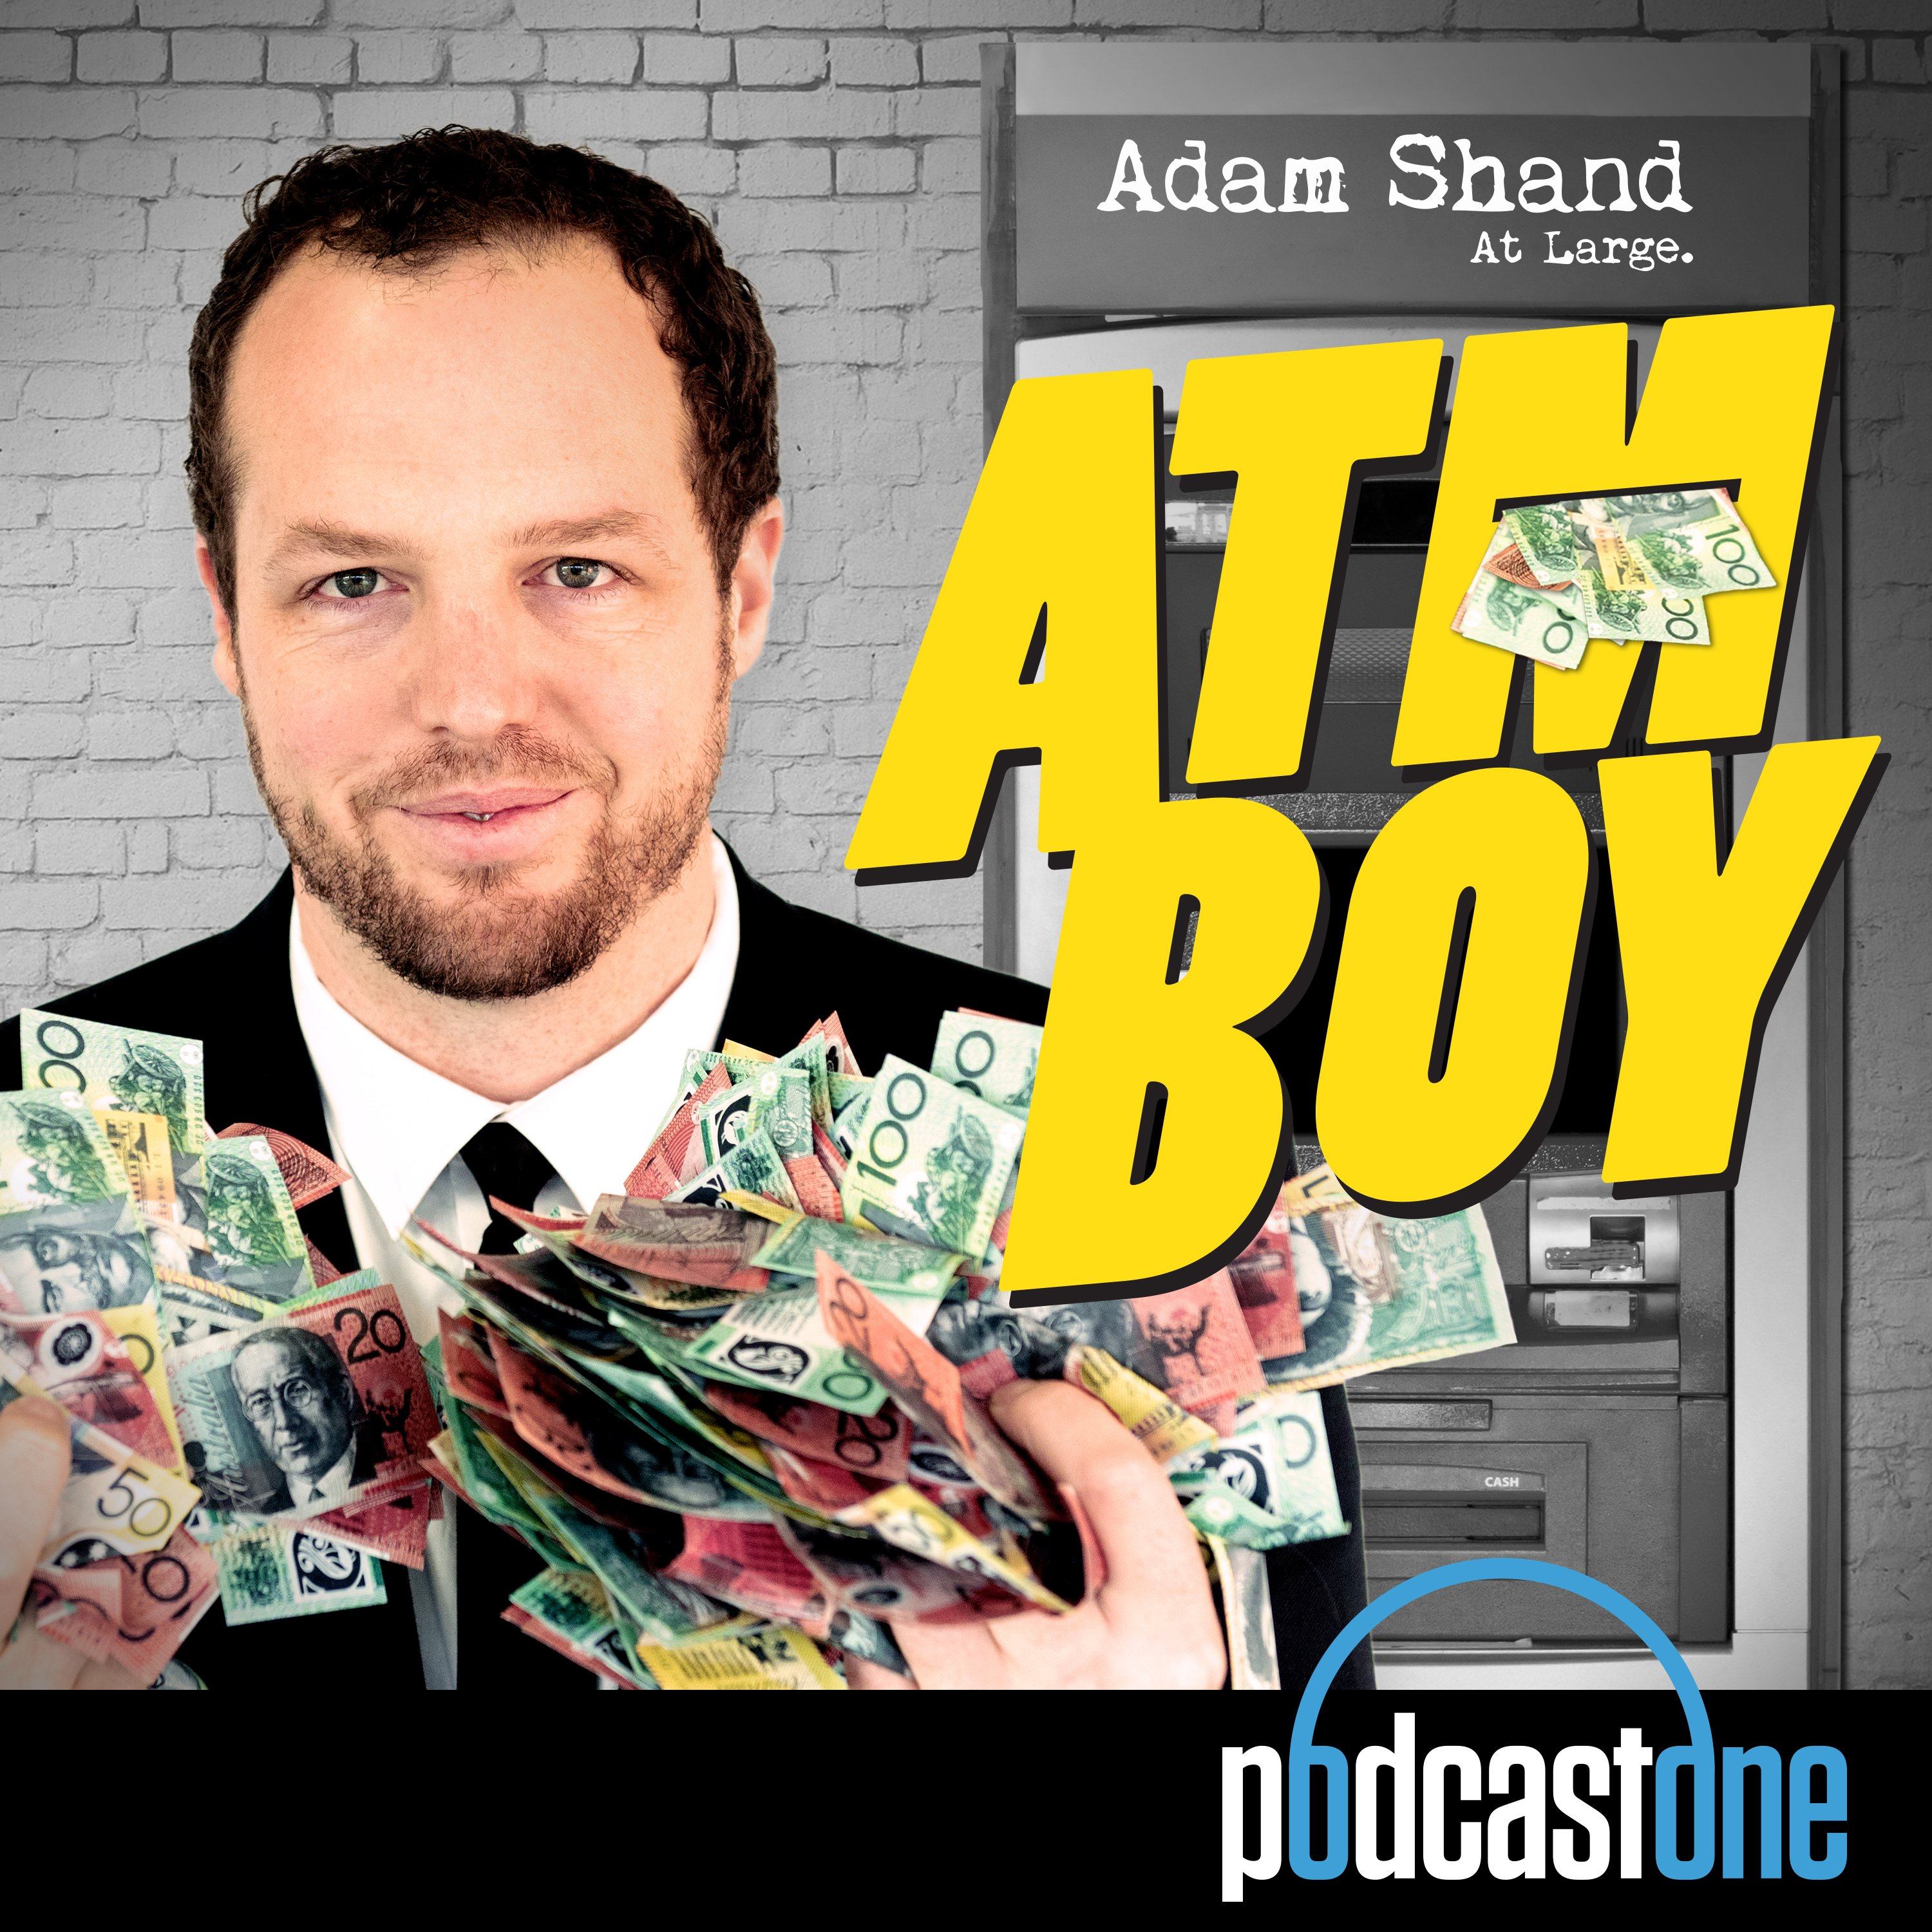 Stephen talks to Adam Shand about his show on Podcast One